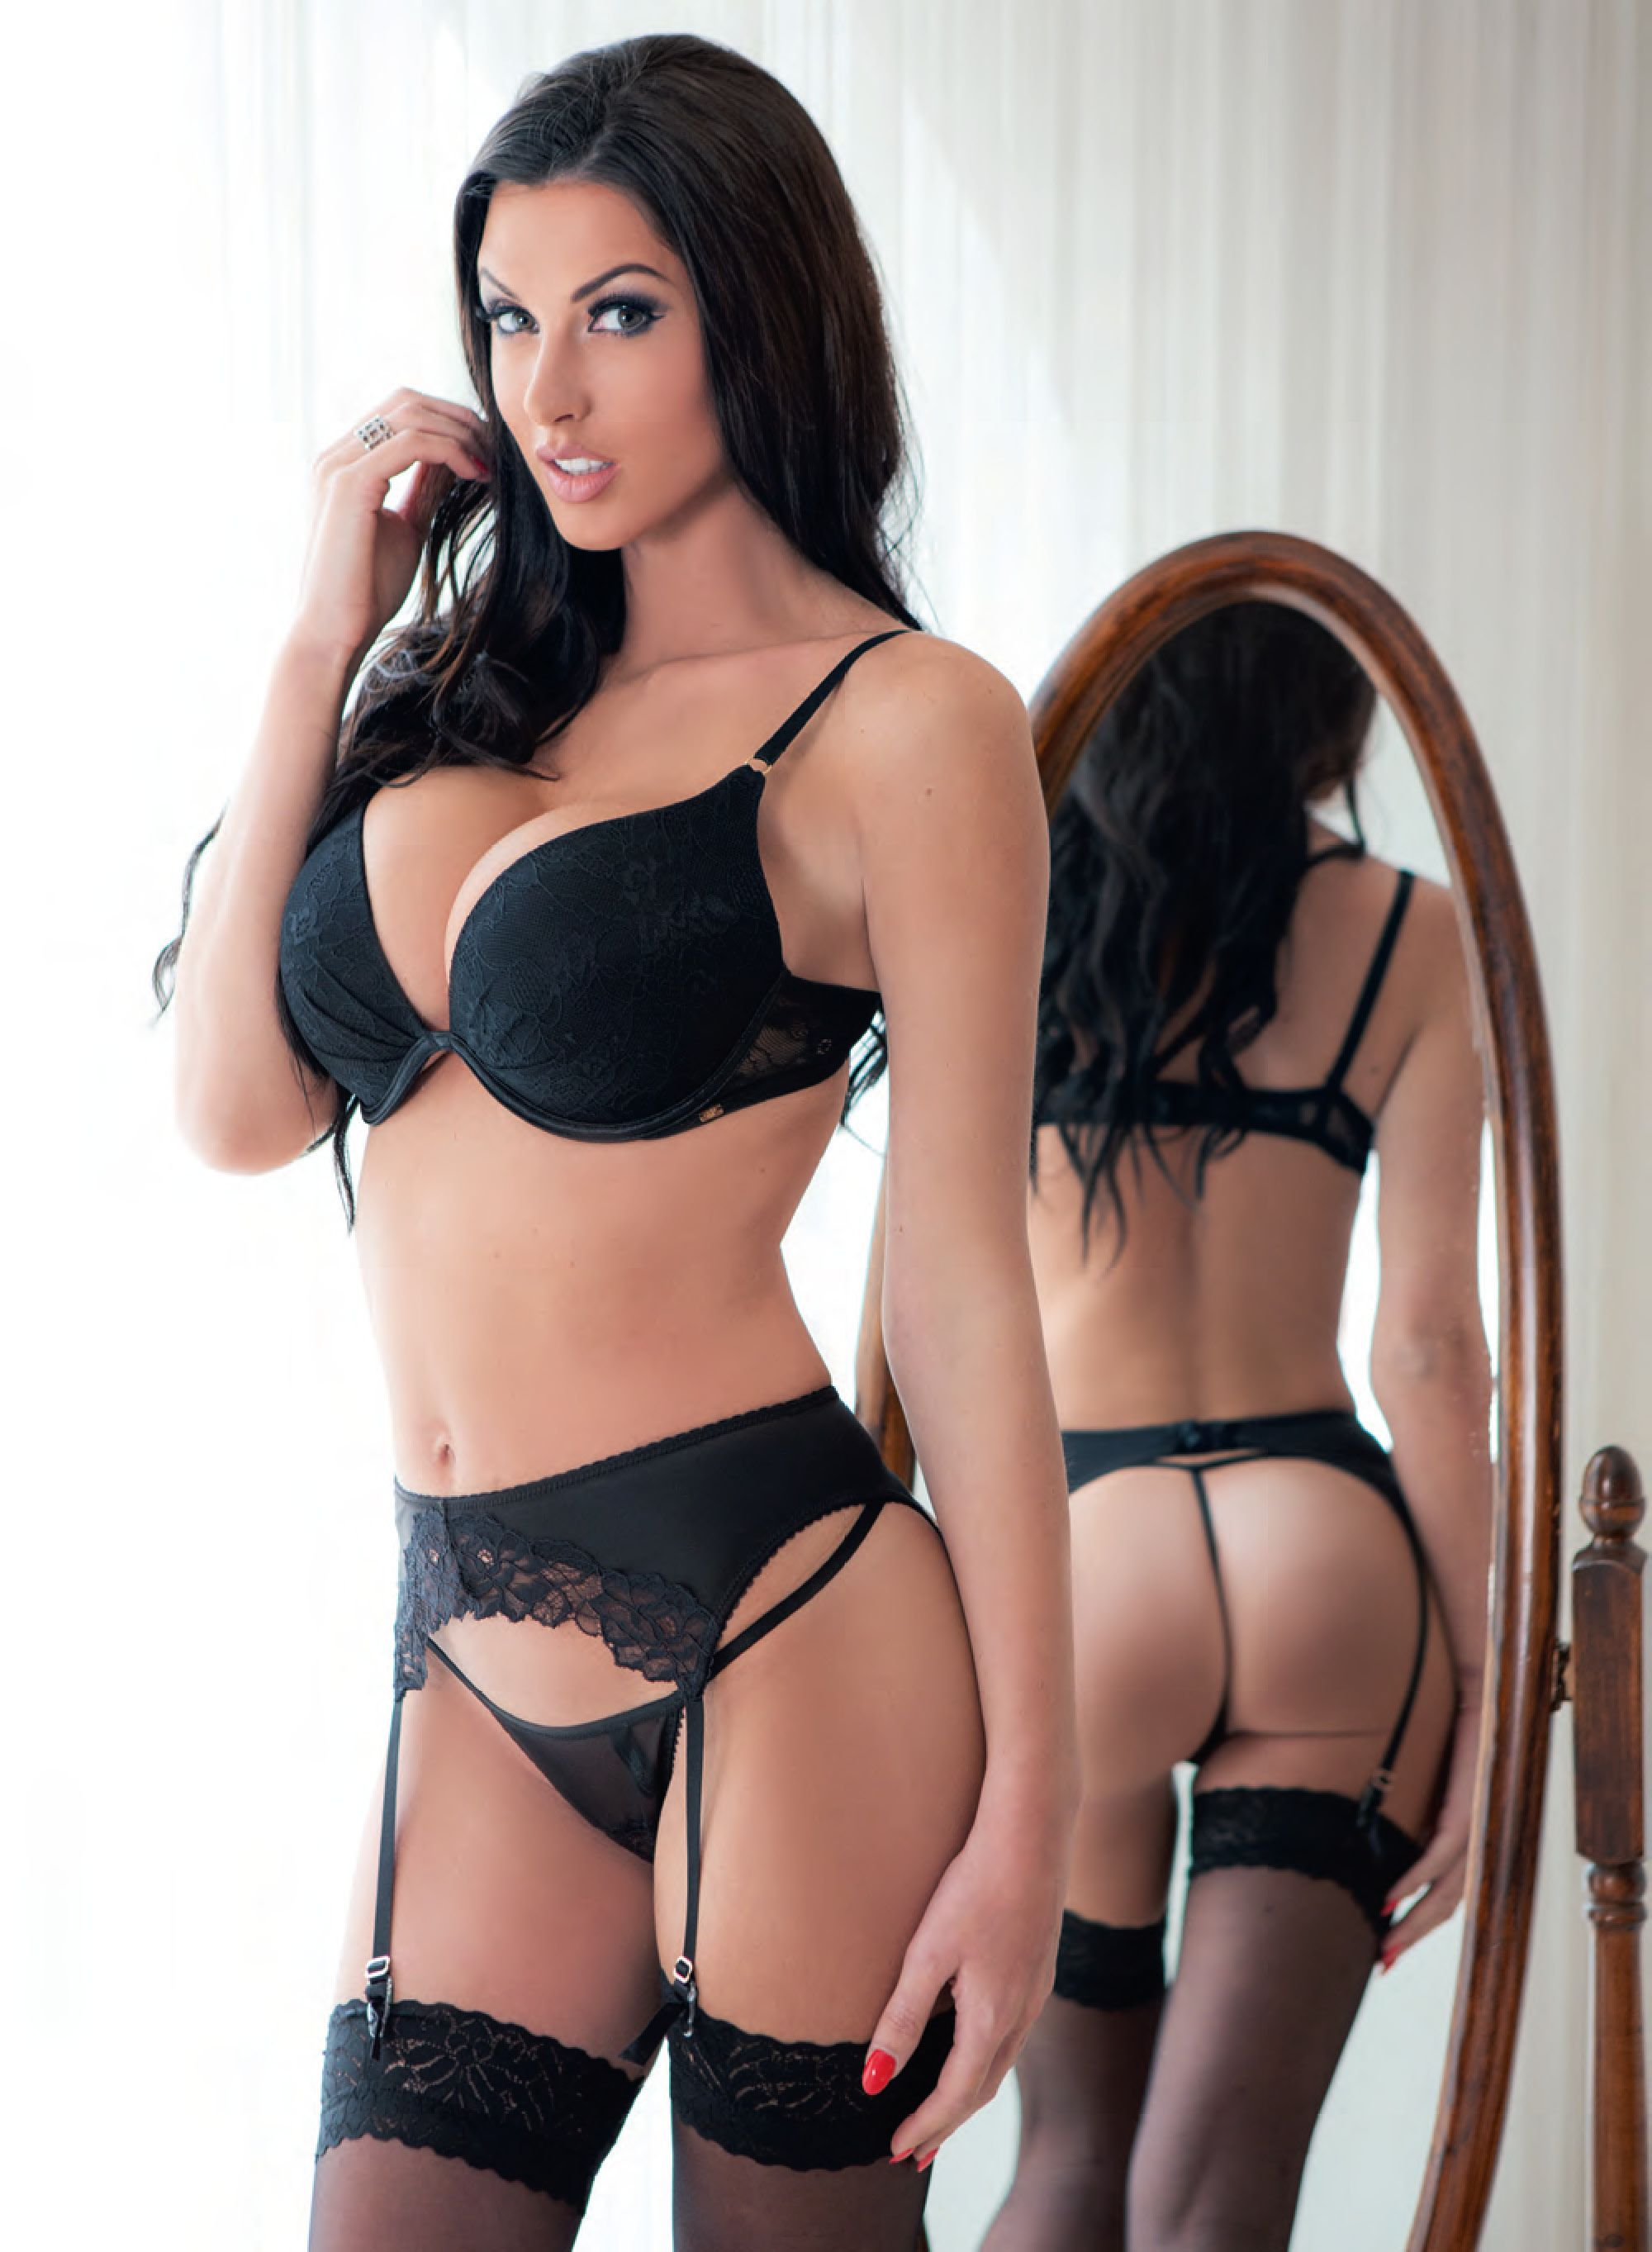 alice goodwin | alice goodwin | pinterest | alice goodwin, alice and